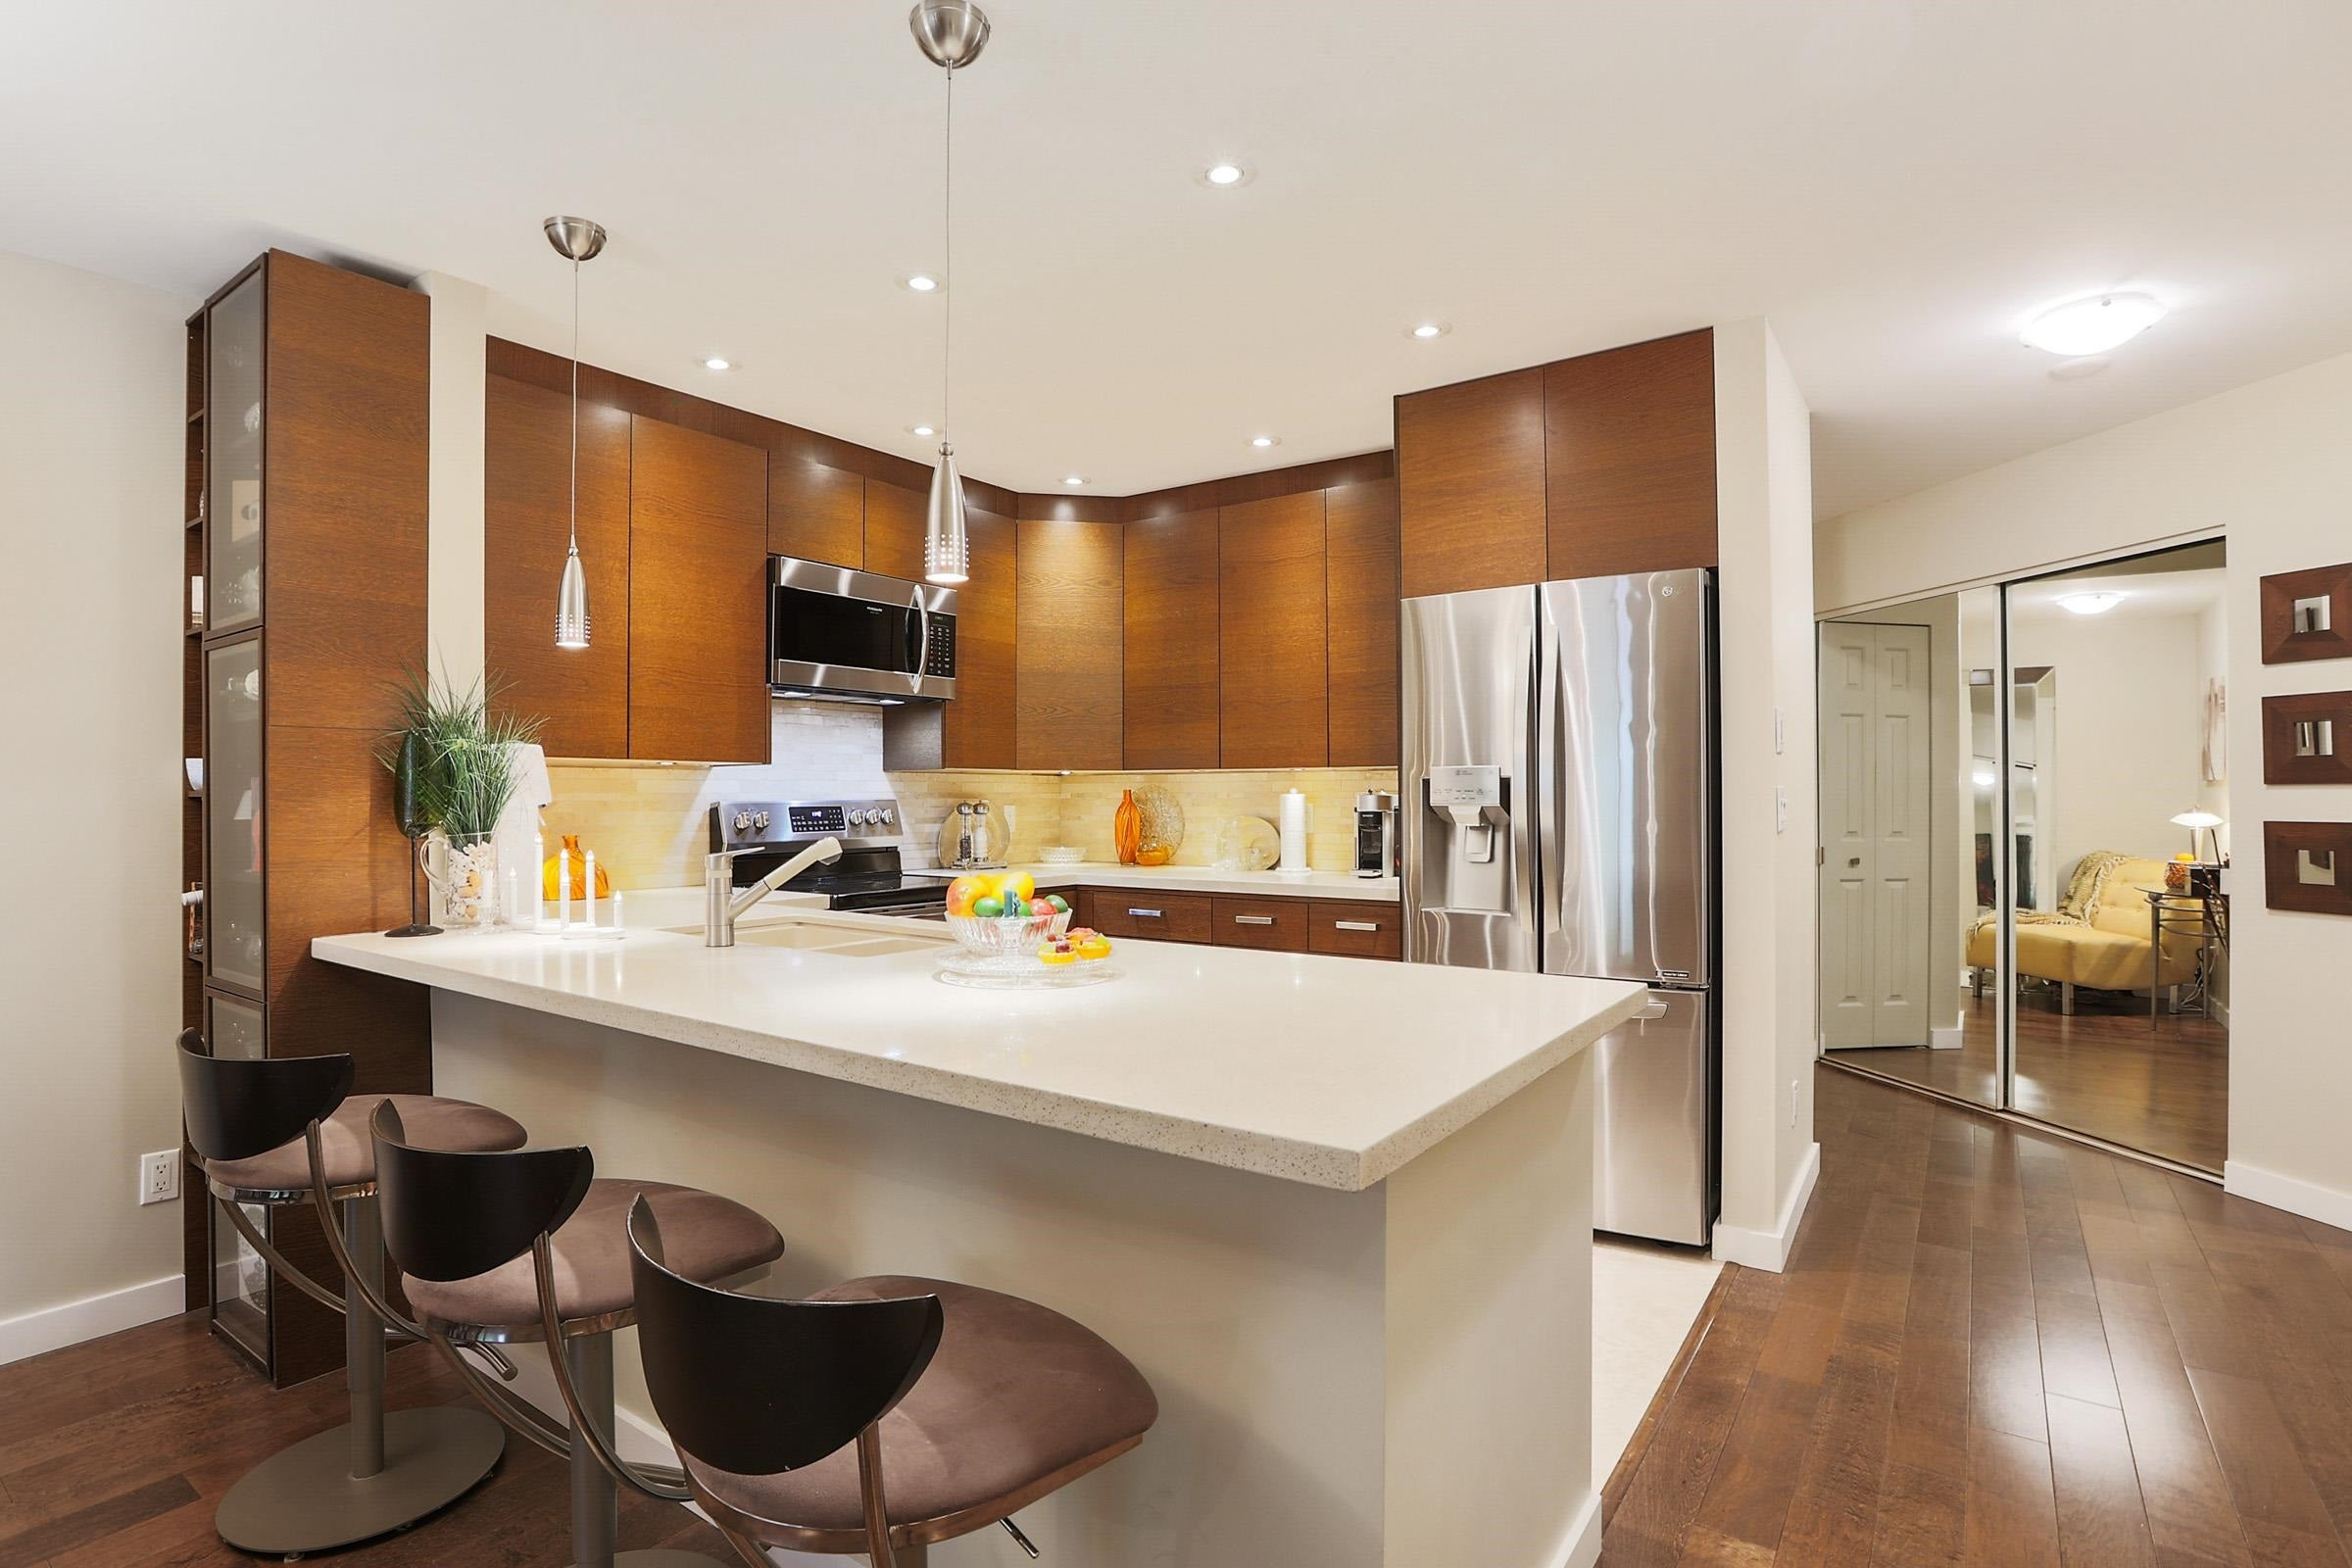 209 2800 CHESTERFIELD AVENUE - Upper Lonsdale Apartment/Condo for sale, 1 Bedroom (R2613924) - #1